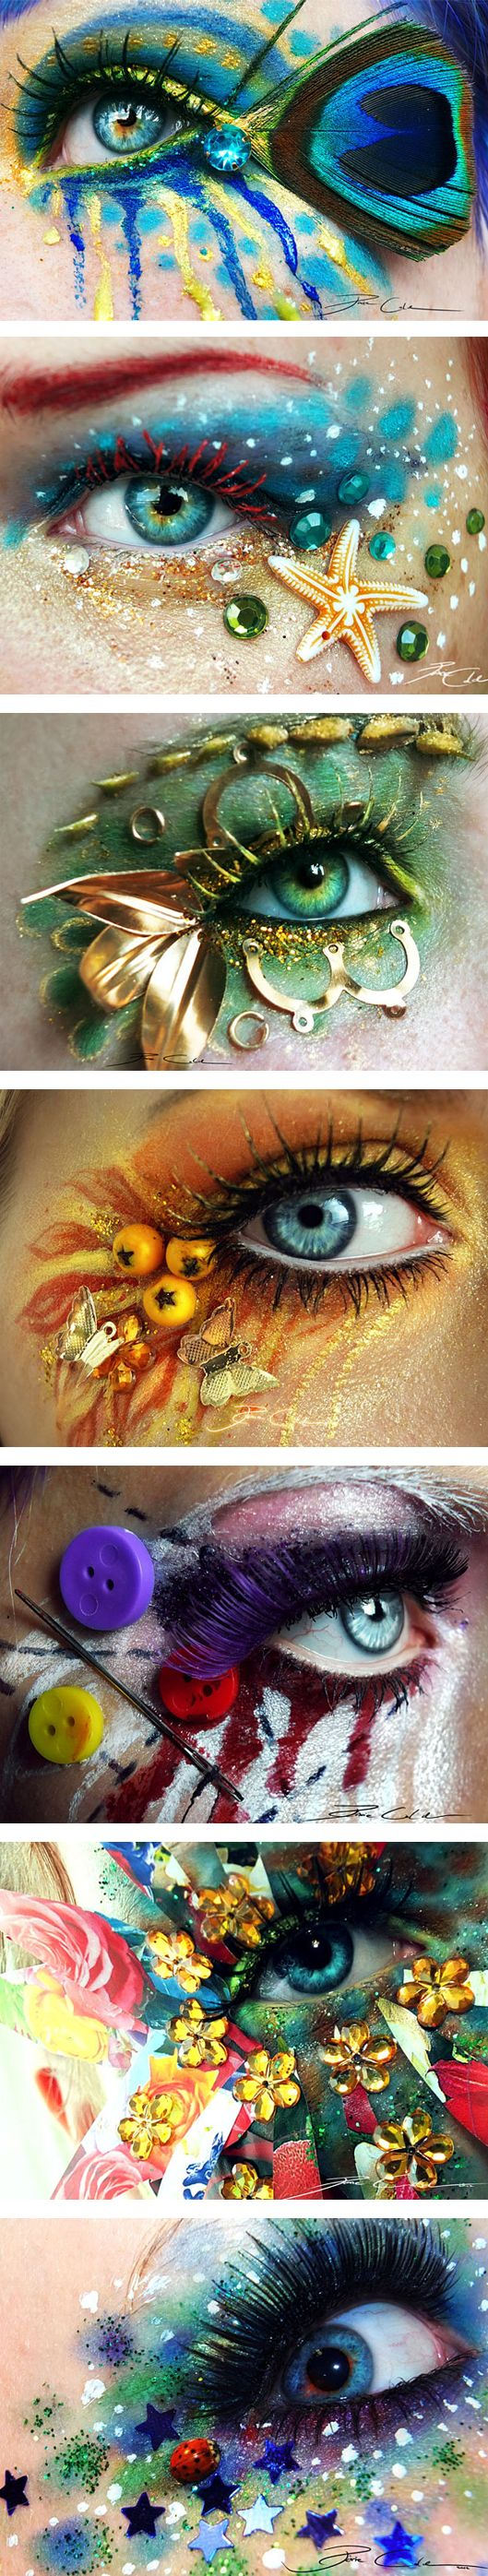 Stunning Eye Make-Up Art!